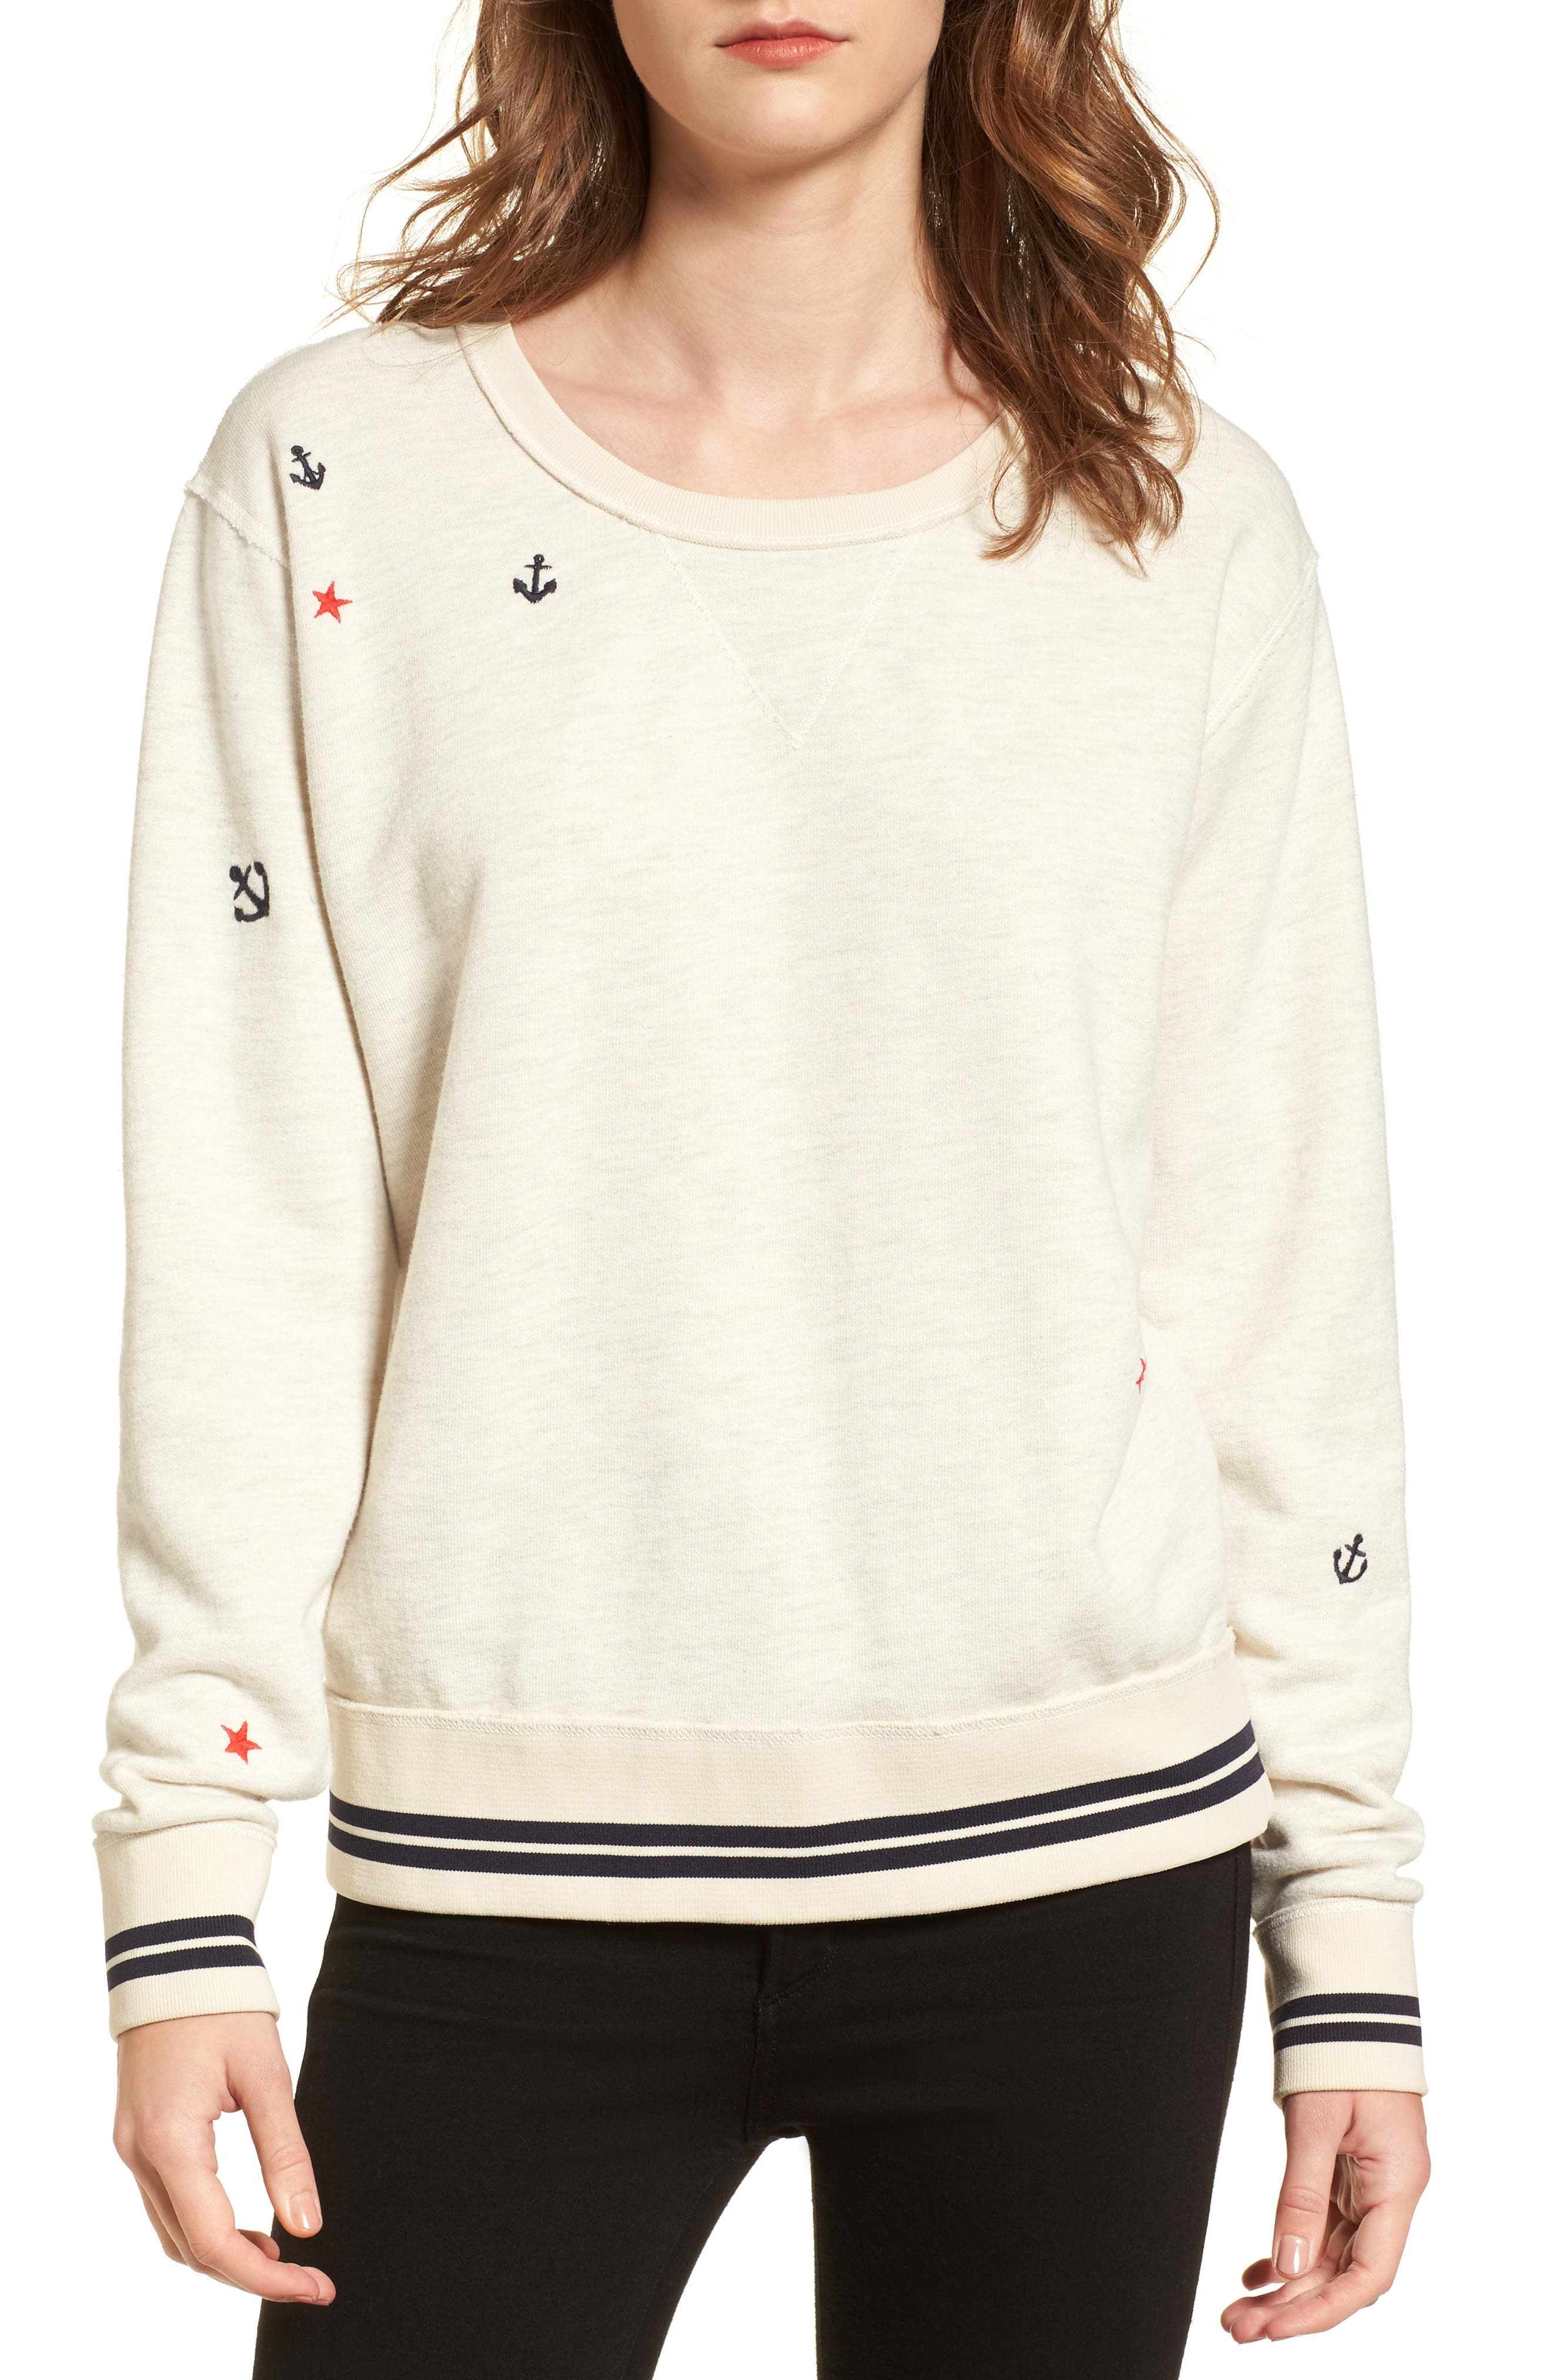 Nautical Sweatshirt,                             Main thumbnail 1, color,                             900